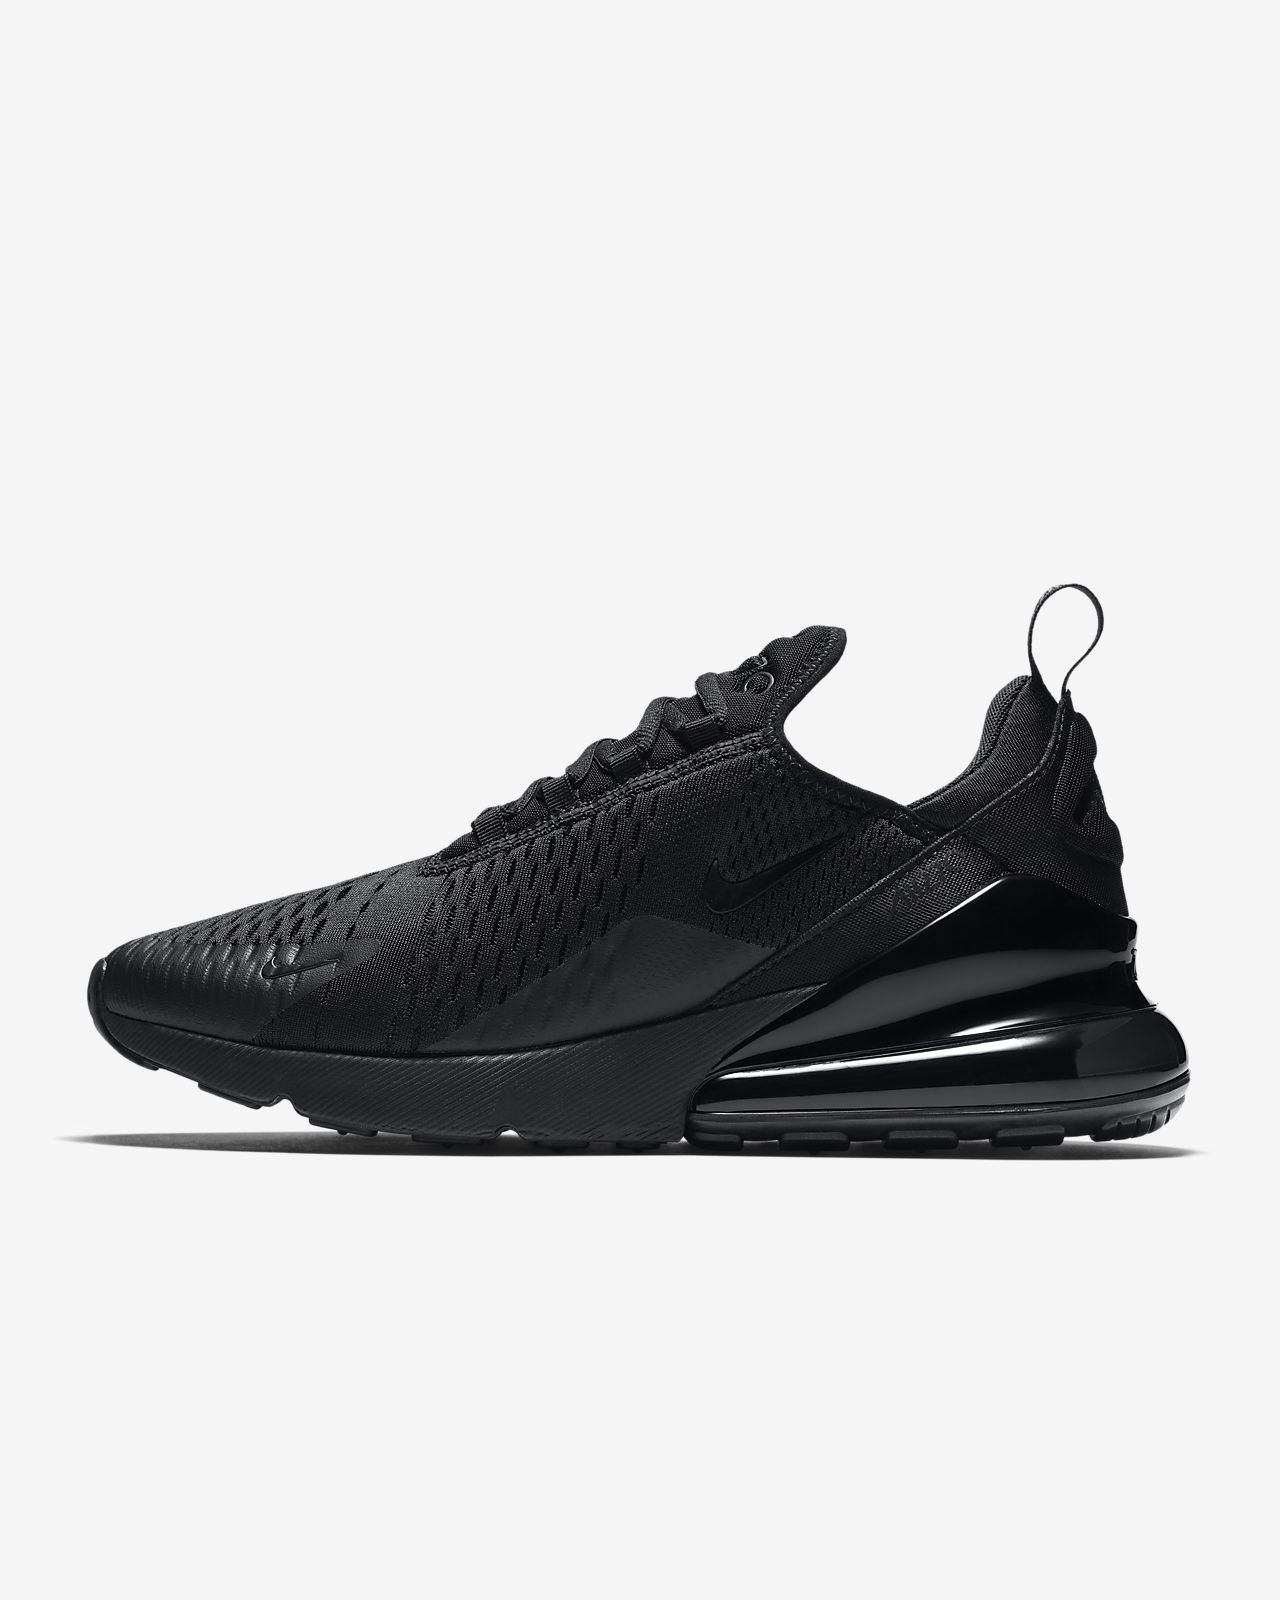 check out 9f7ee 86c1b 639 zł. Low Resolution Buty męskie Nike Air Max 270 Buty męskie Nike Air  Max 270